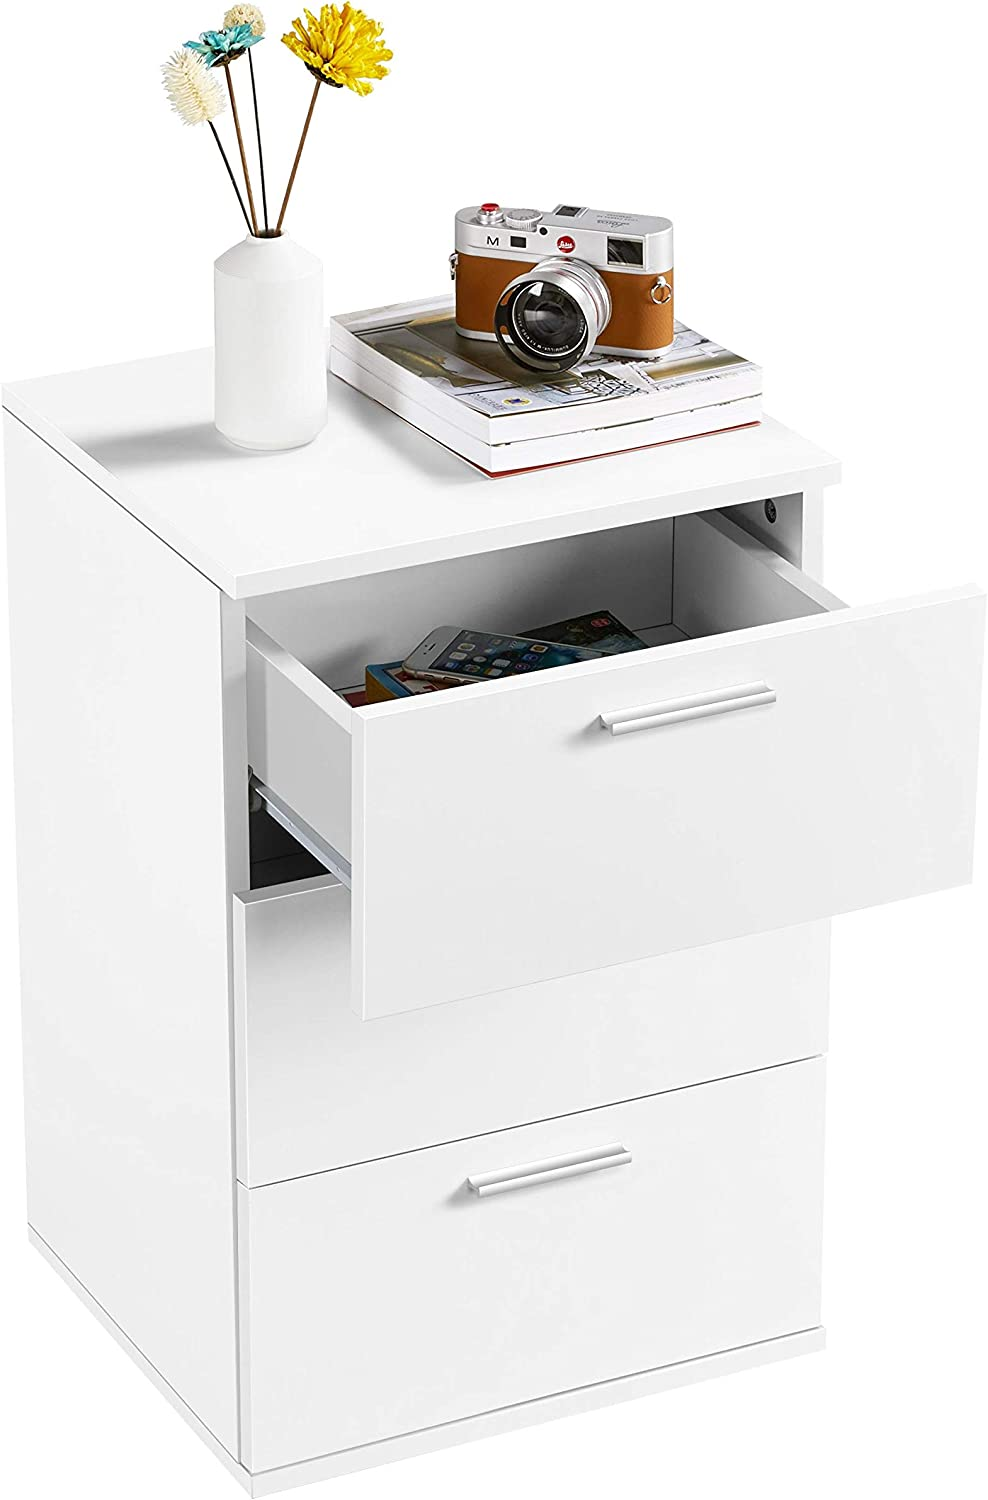 YAHEETECH 3- Drawer Nightstands, Modern Wood End Side Table with Cabinet, Sofa Table, Bed Side Storage Stand Cabinet for Bedroom, White